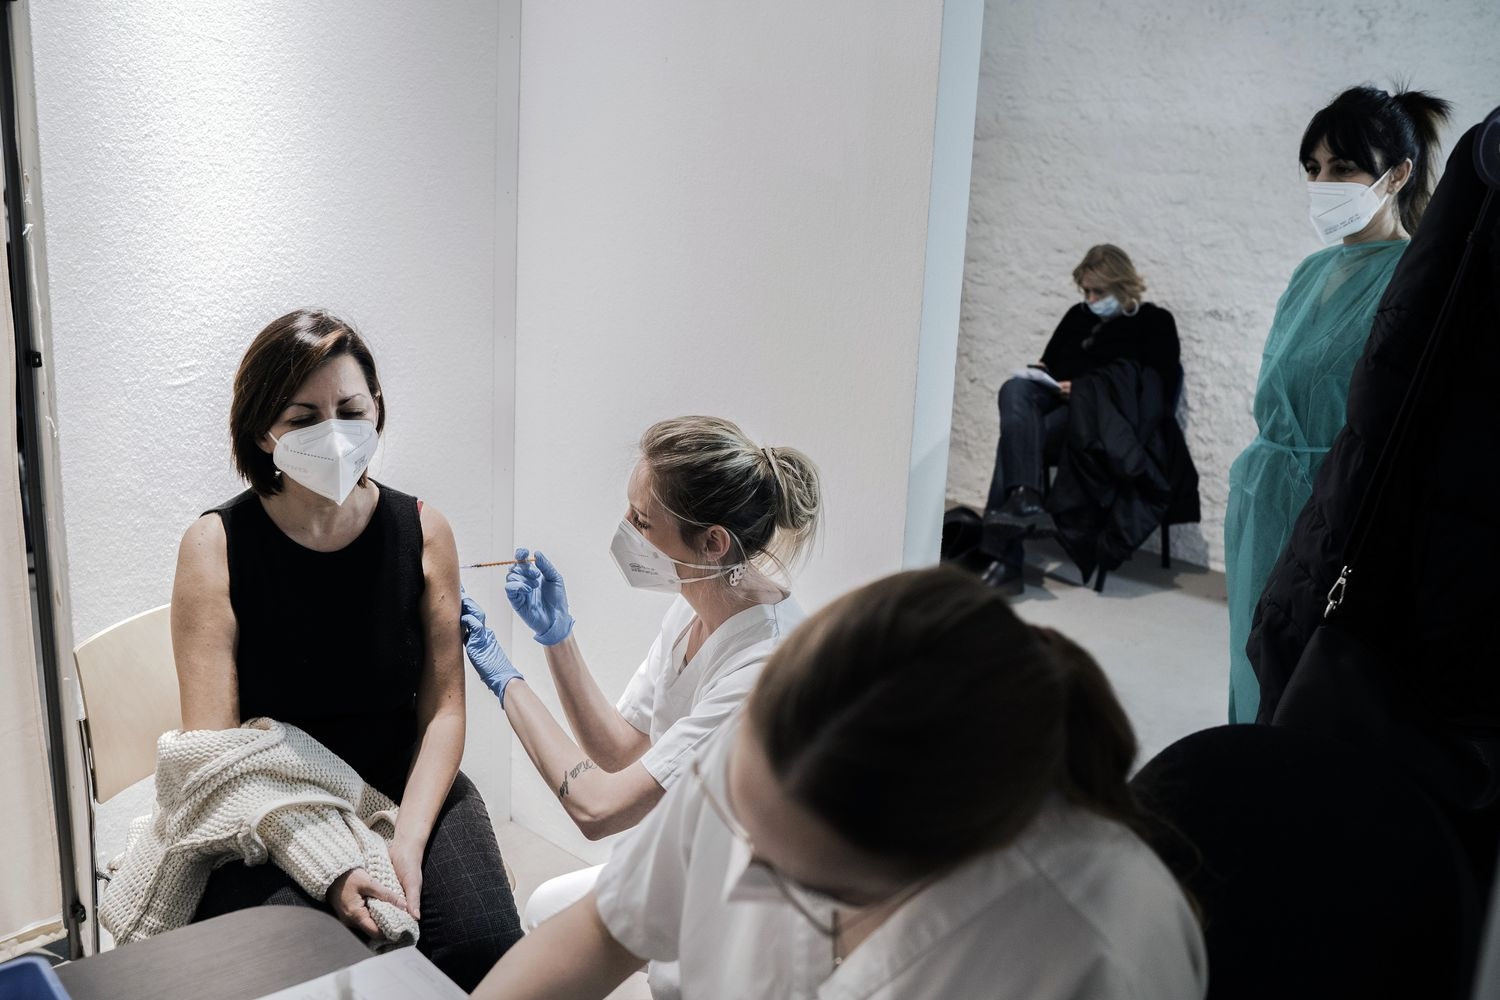 A woman receives an AstraZeneca Covid-19 vaccine at the Museum of Science and Technology in Milan on Monday. (Alessandro Grassani/The New York Times)